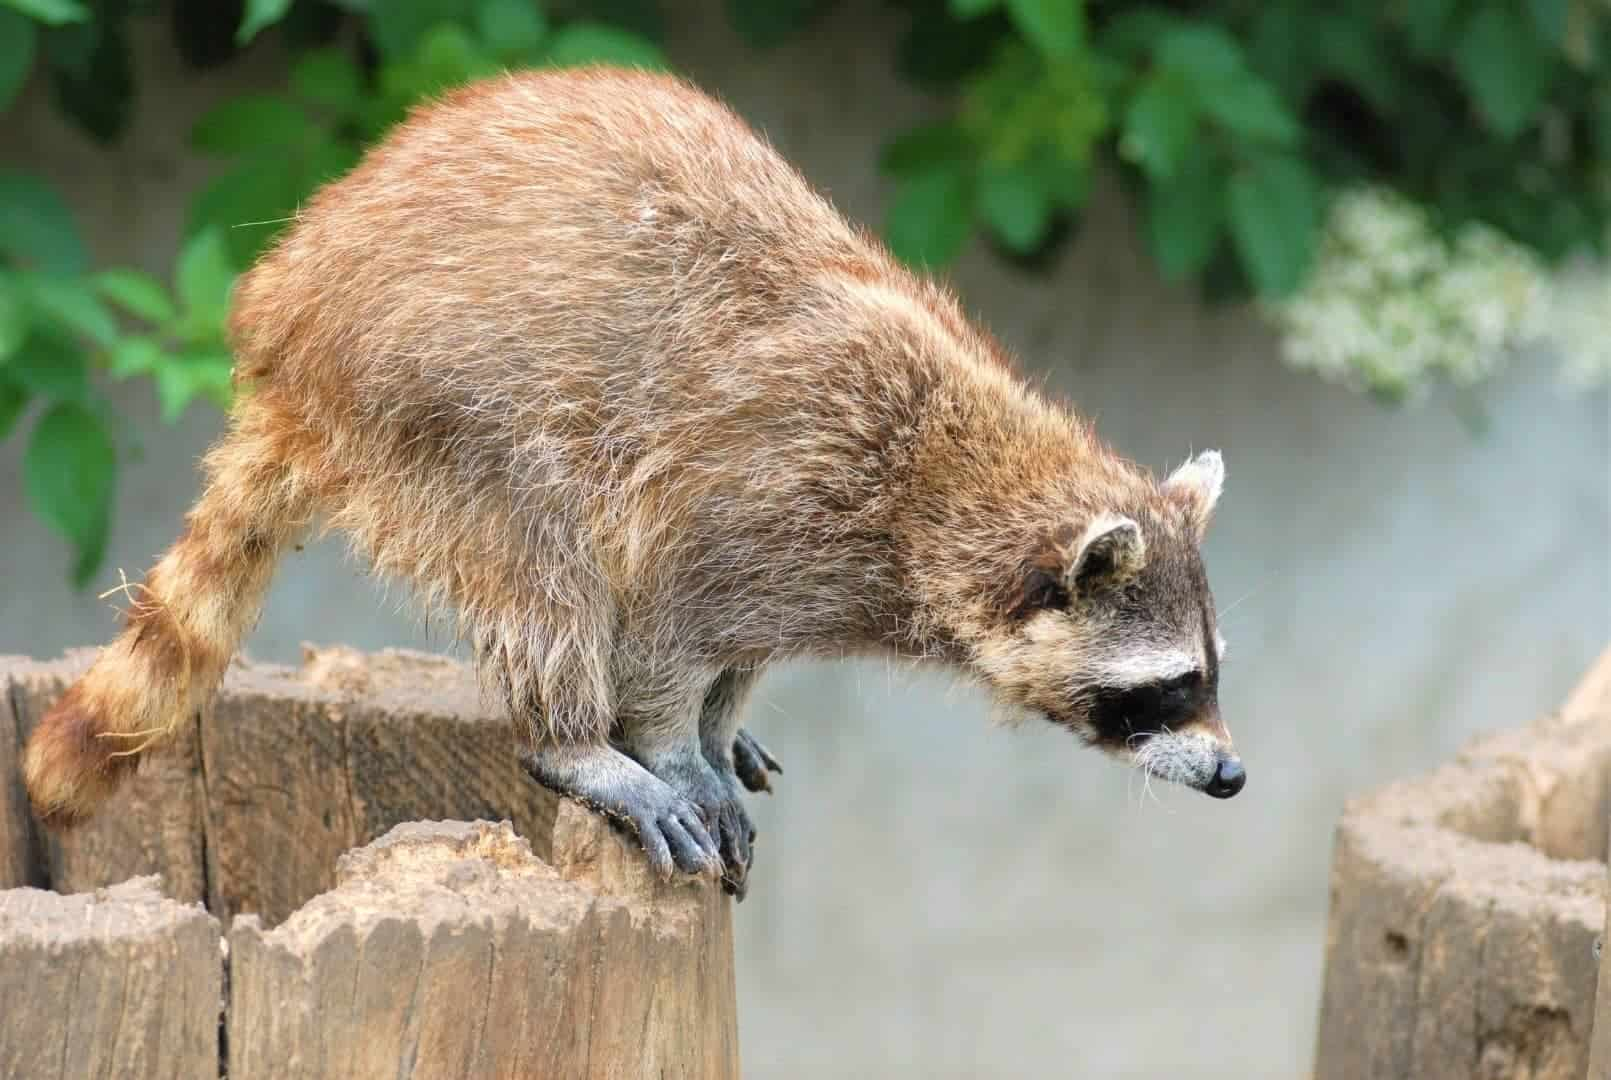 How High Can Raccoons Jump From Ground & From Height? & How Far?